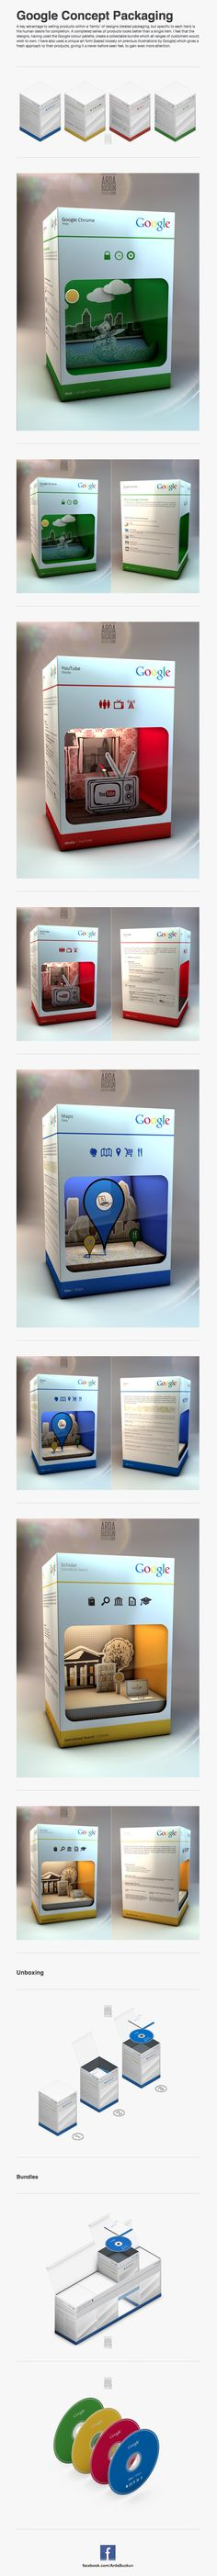 Google packaging concept. #packaging #design #inspiration PD